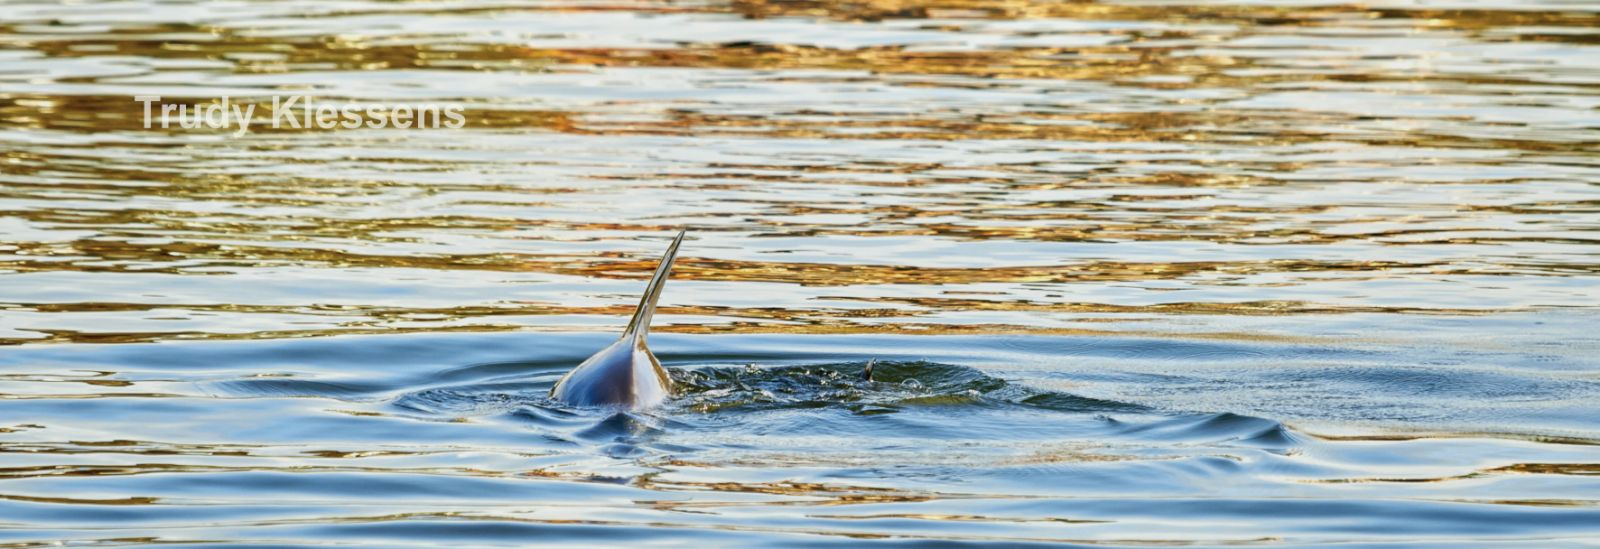 Learn about Perth's dolphins - 5 August